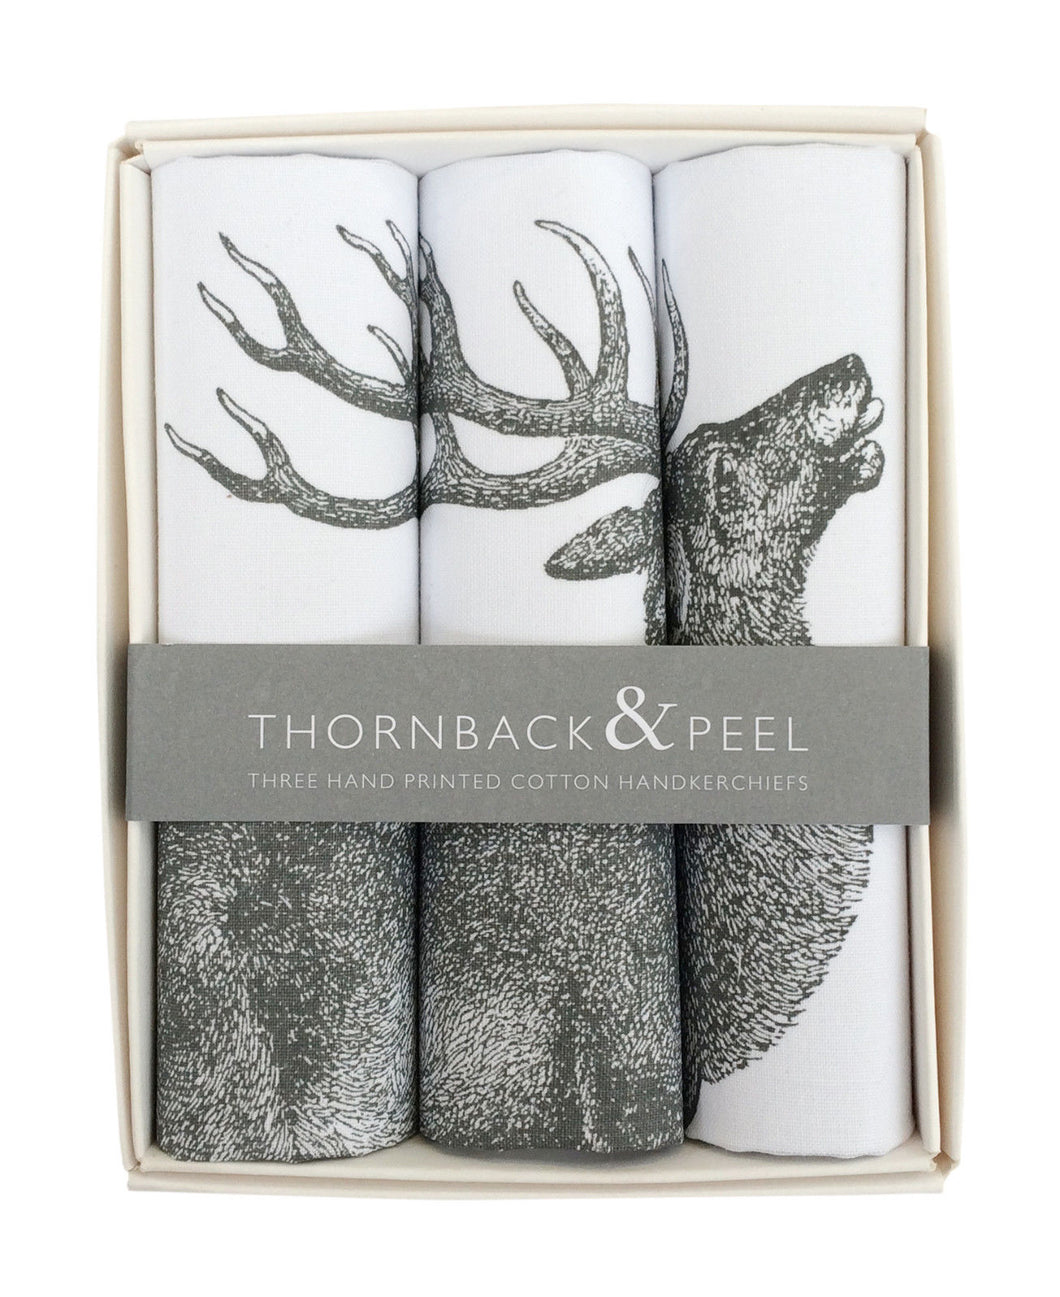 Thornback & Peel Handkerchiefs Set of 3 Stag Design, 100% Cotton, Gift Boxed